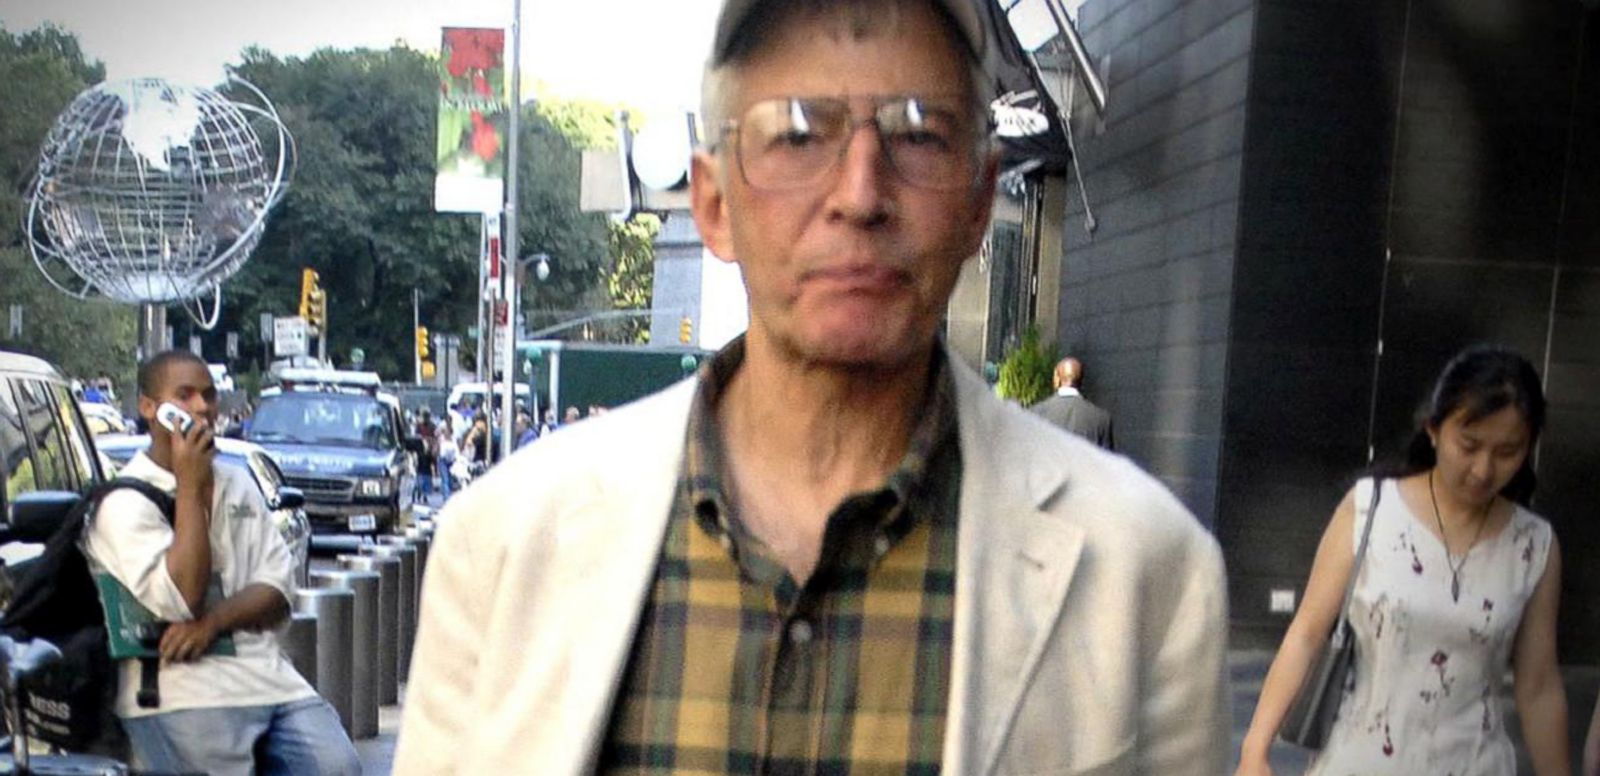 Robert Durst's Alleged Trail of Crimes